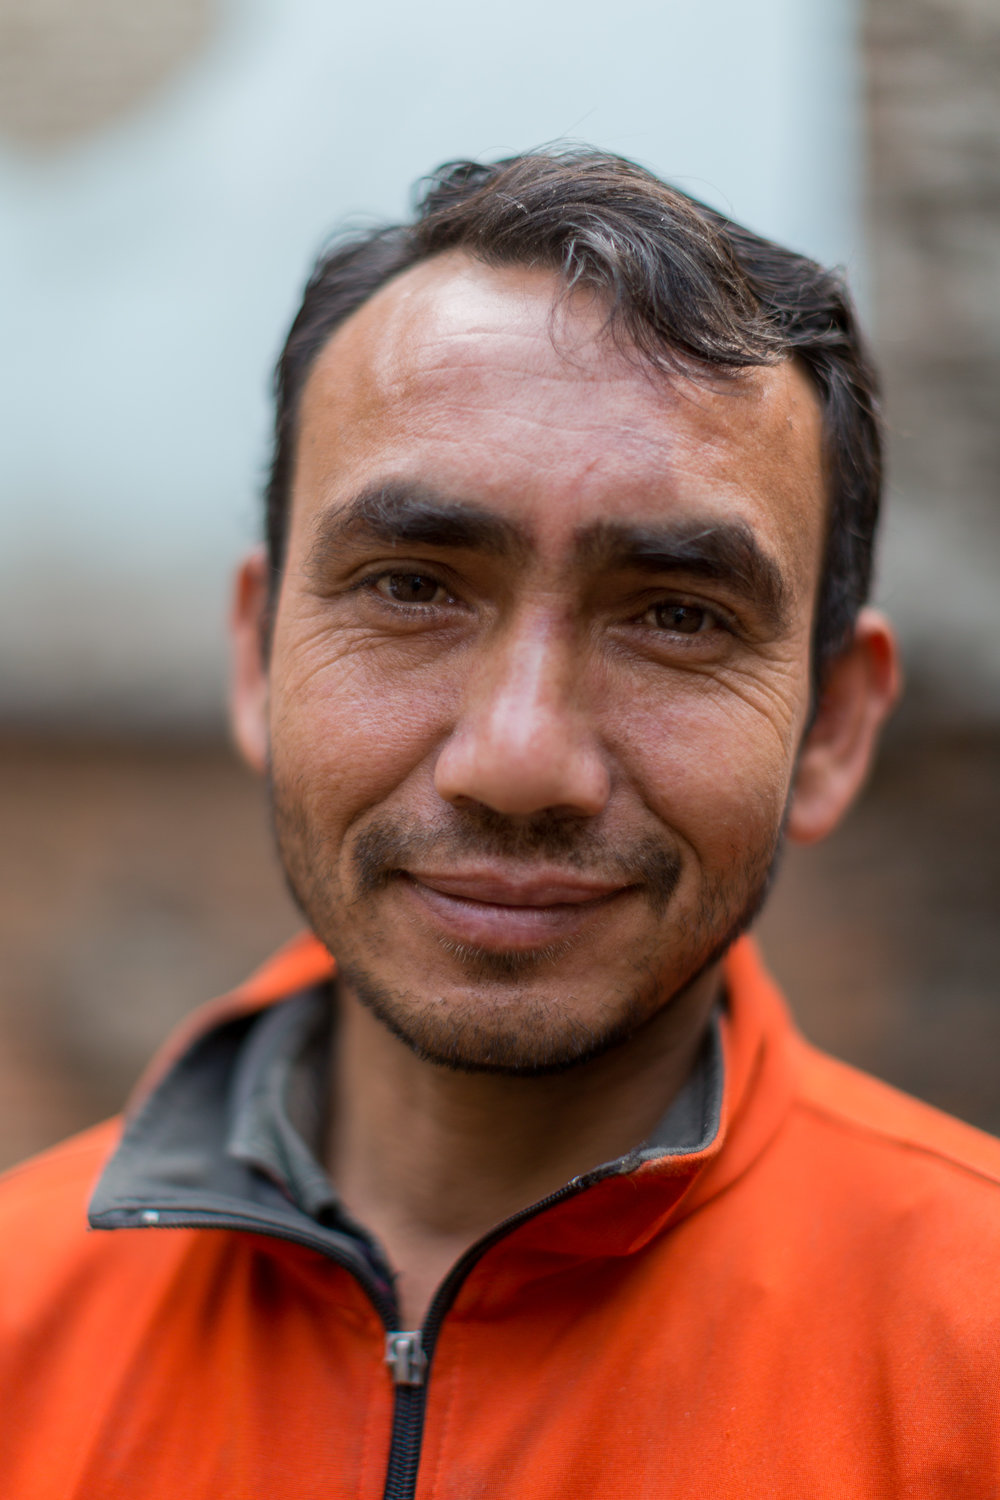 It has been nearly 2 years since the Bahattri's family home was destroyed in the series of earthquakes that killed nearly 9000 people in Nepal in April and May of 2015. Their home is only being rebuilt by their own labour (3 generations worth) and what little savings they have. They are unable to wait any longer. The $4.1 Billion raised for Nepal in the aftermath of the earthquake tagged for families like the Bahattris and 770,000 other households is nowhere to be seen. Political dysfunction, successive governments with an average lifespan of around 9 months and corruption has resulted in the International community pleading with the government to spend and distribute the aid.